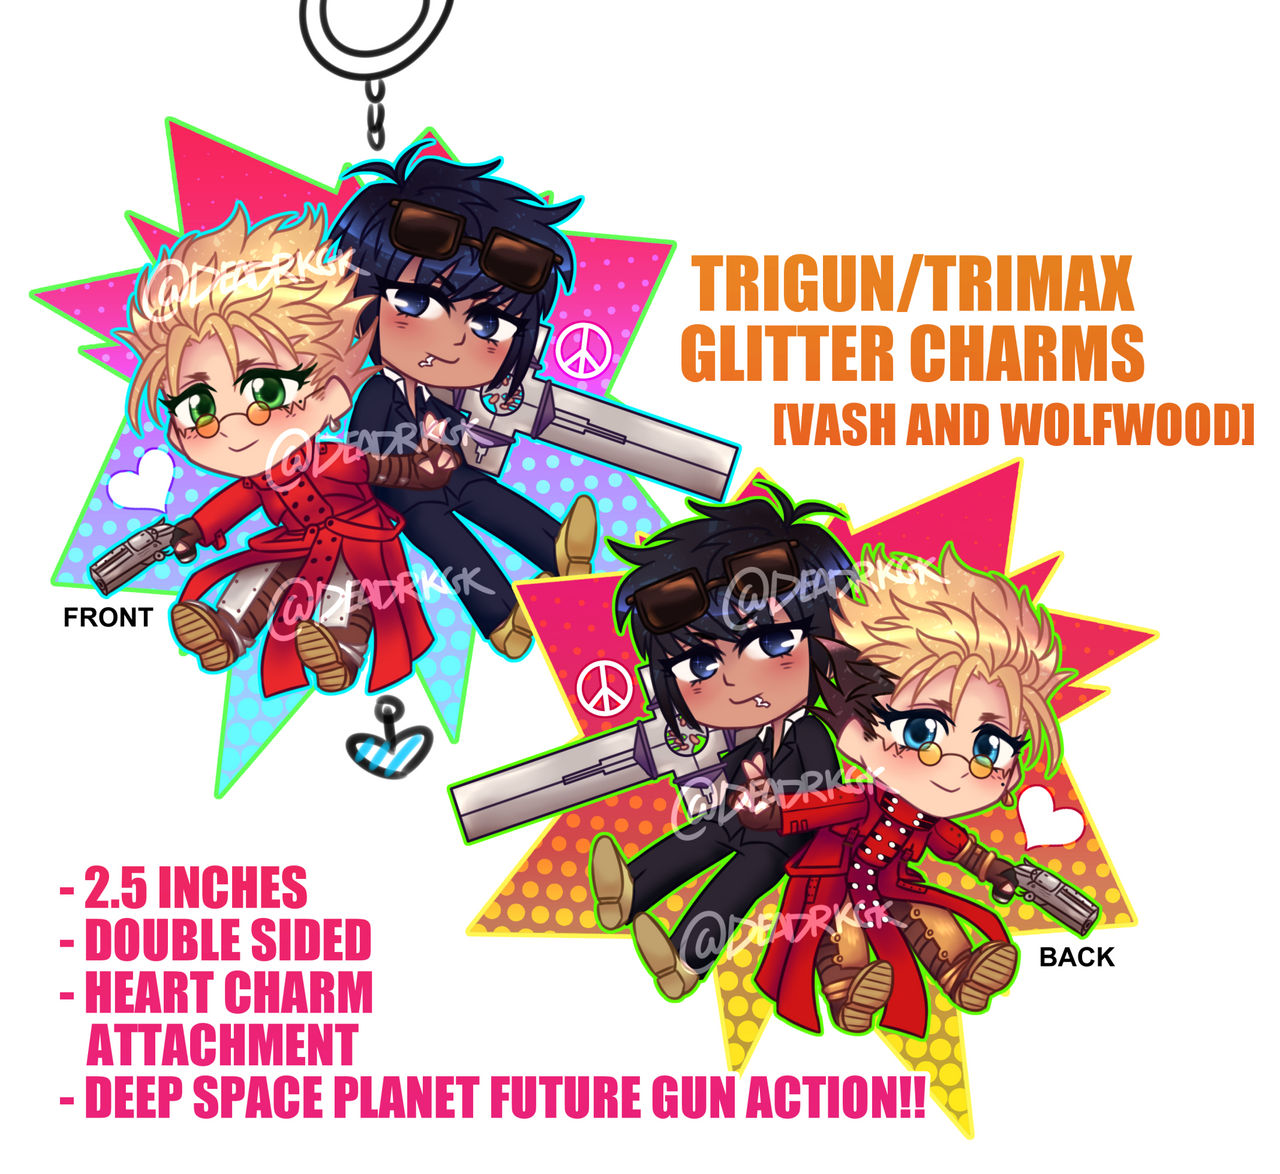 trigun__vash_and_wolfwood__glitter_charm